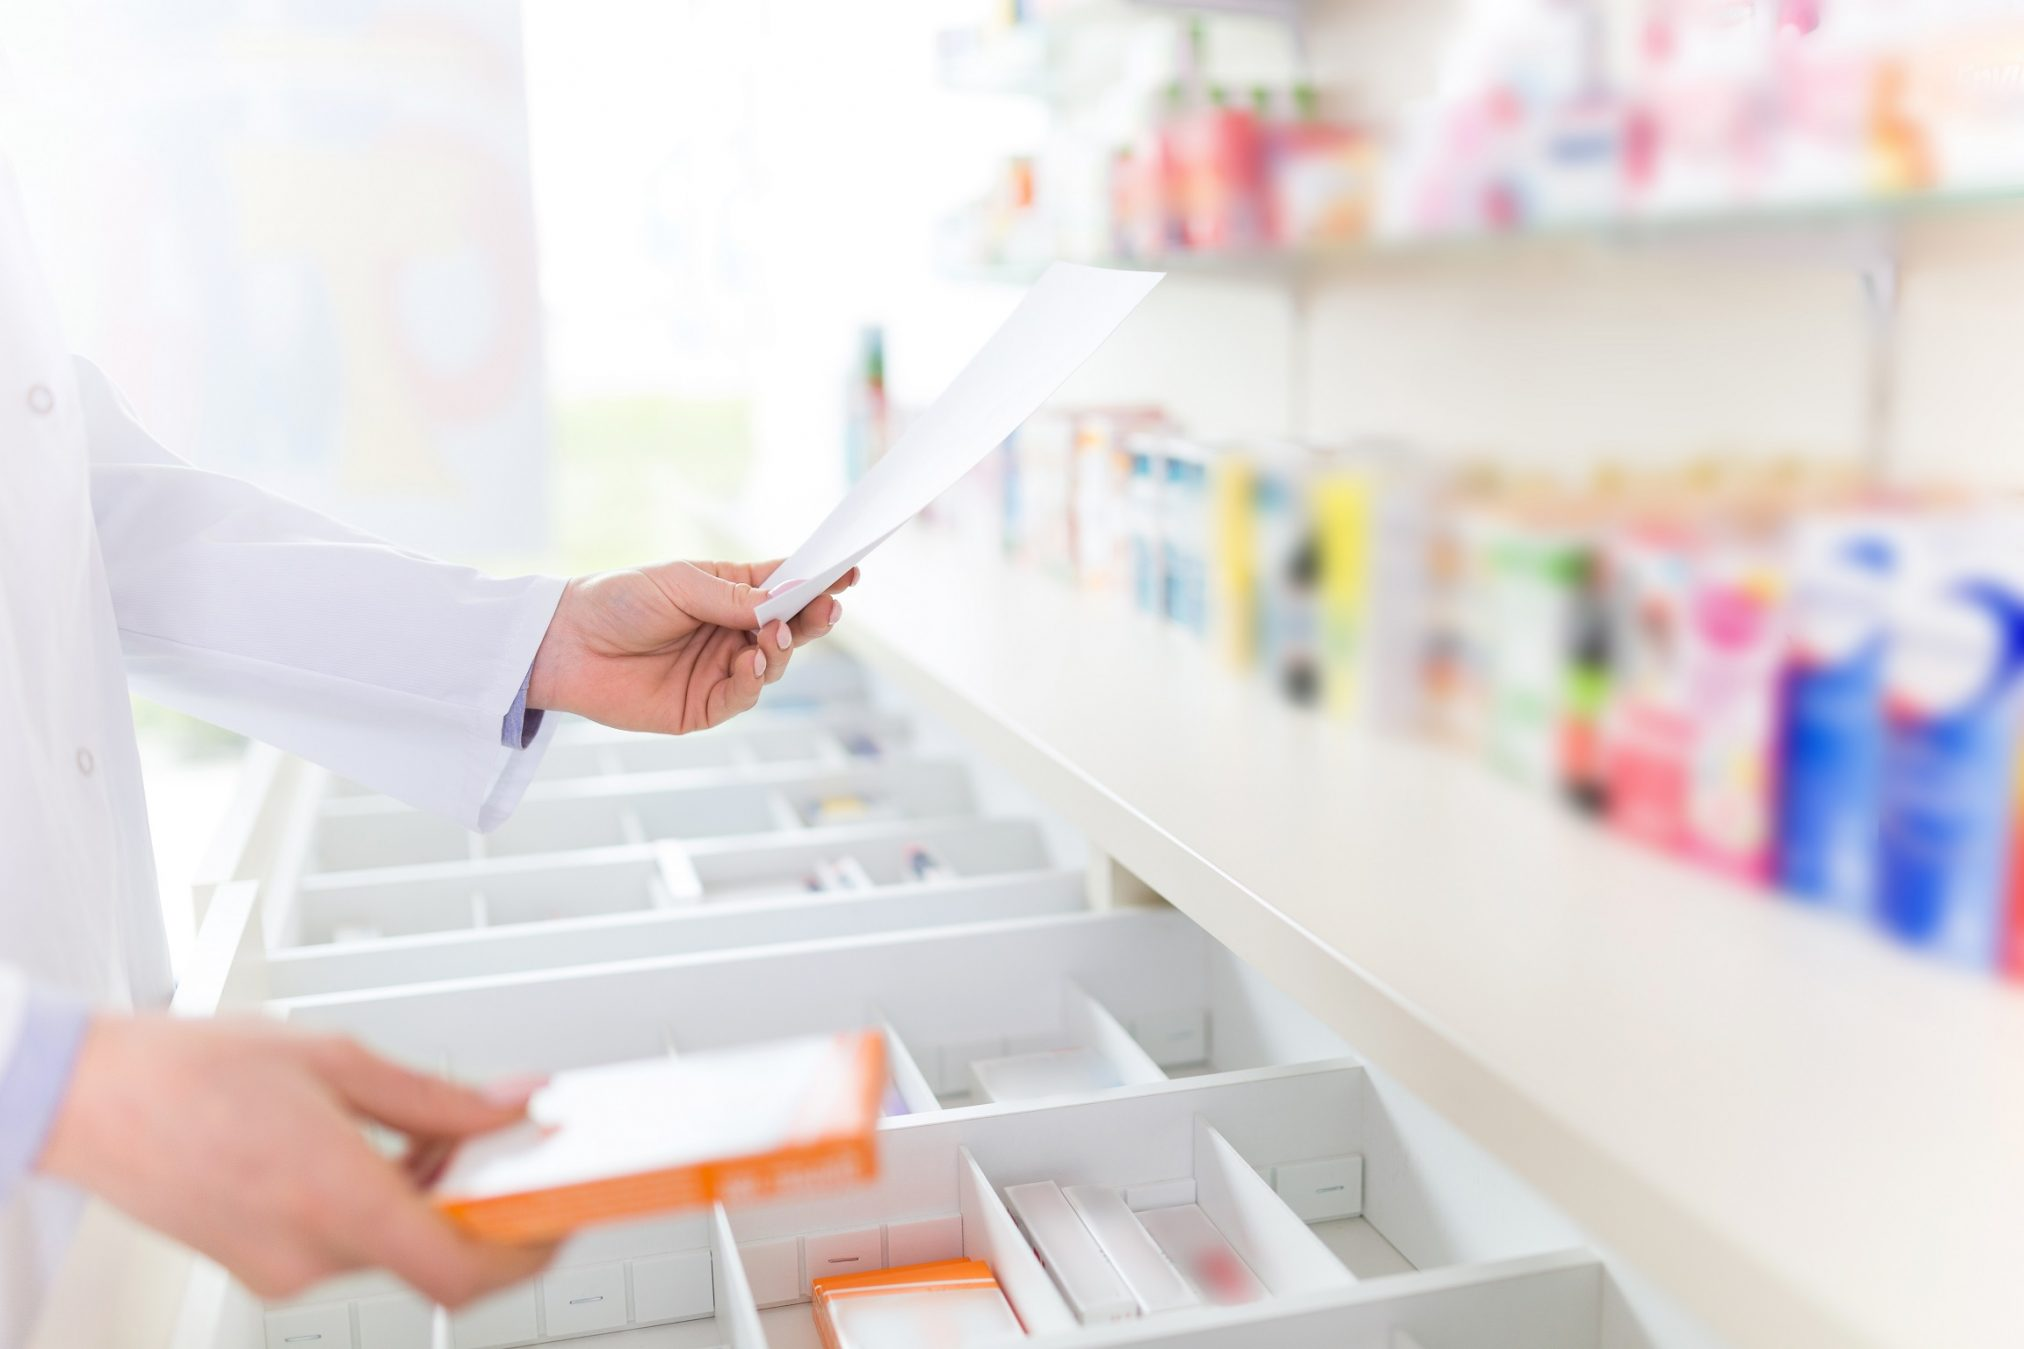 15 ideas for your pharmacy career | AJP